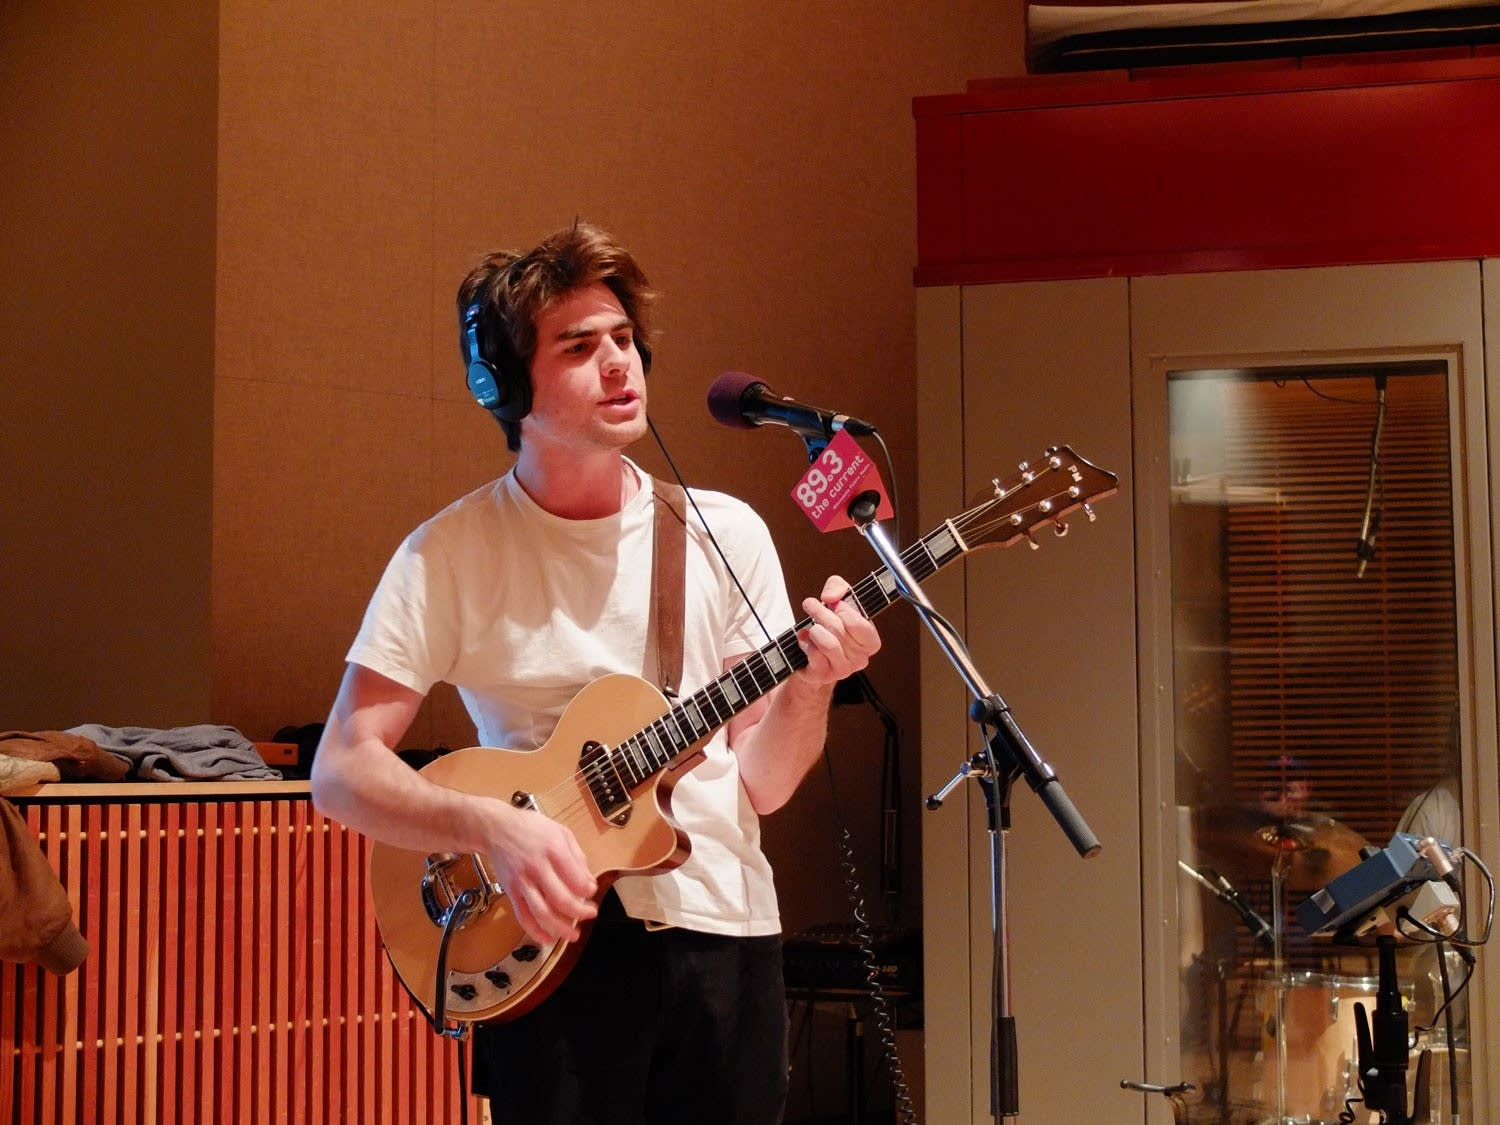 Matt O'Keefe of The Orwells performs in The Current studio